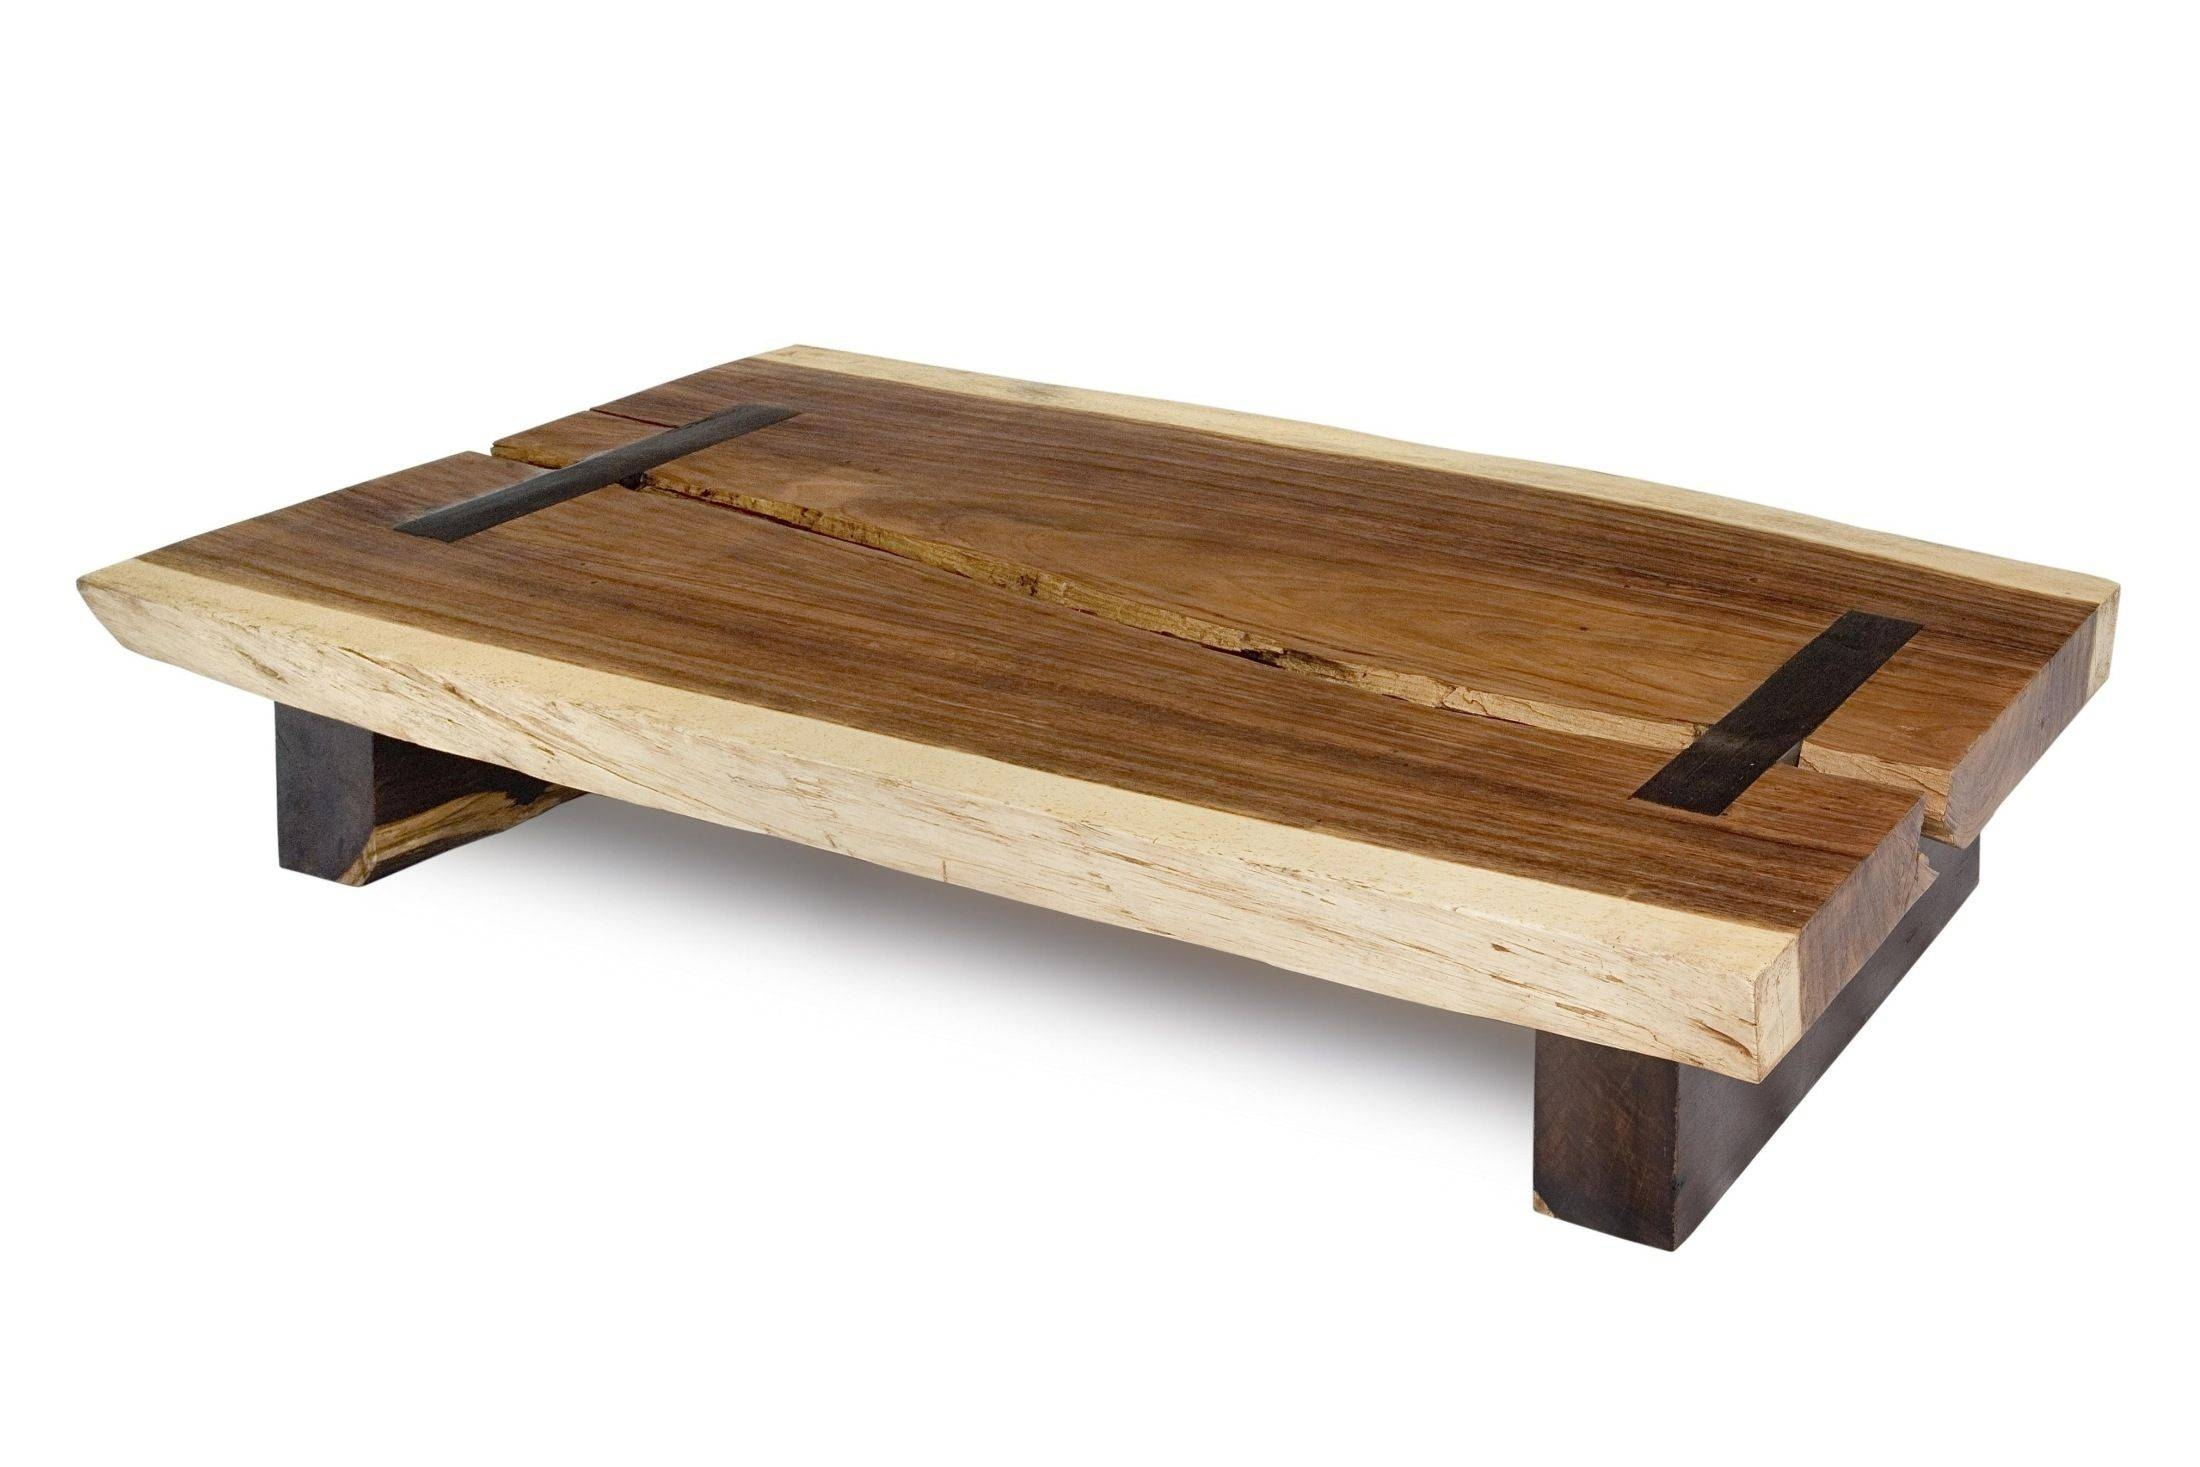 15 ideas of unusual wooden coffee tables for Unusual tables